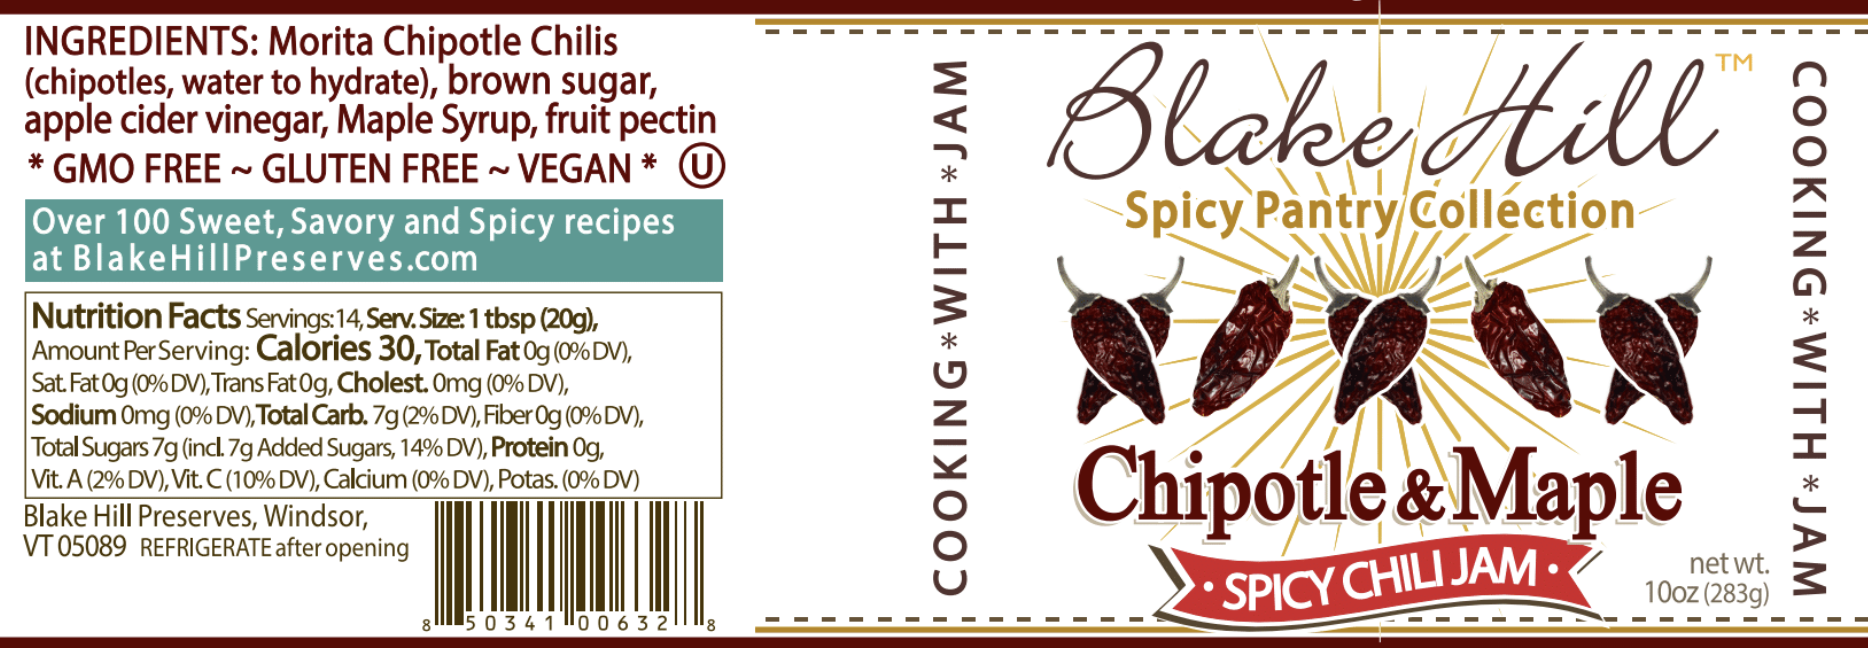 CHIPOTLE & MAPLE CHILI JAM NUTRITION FACTS